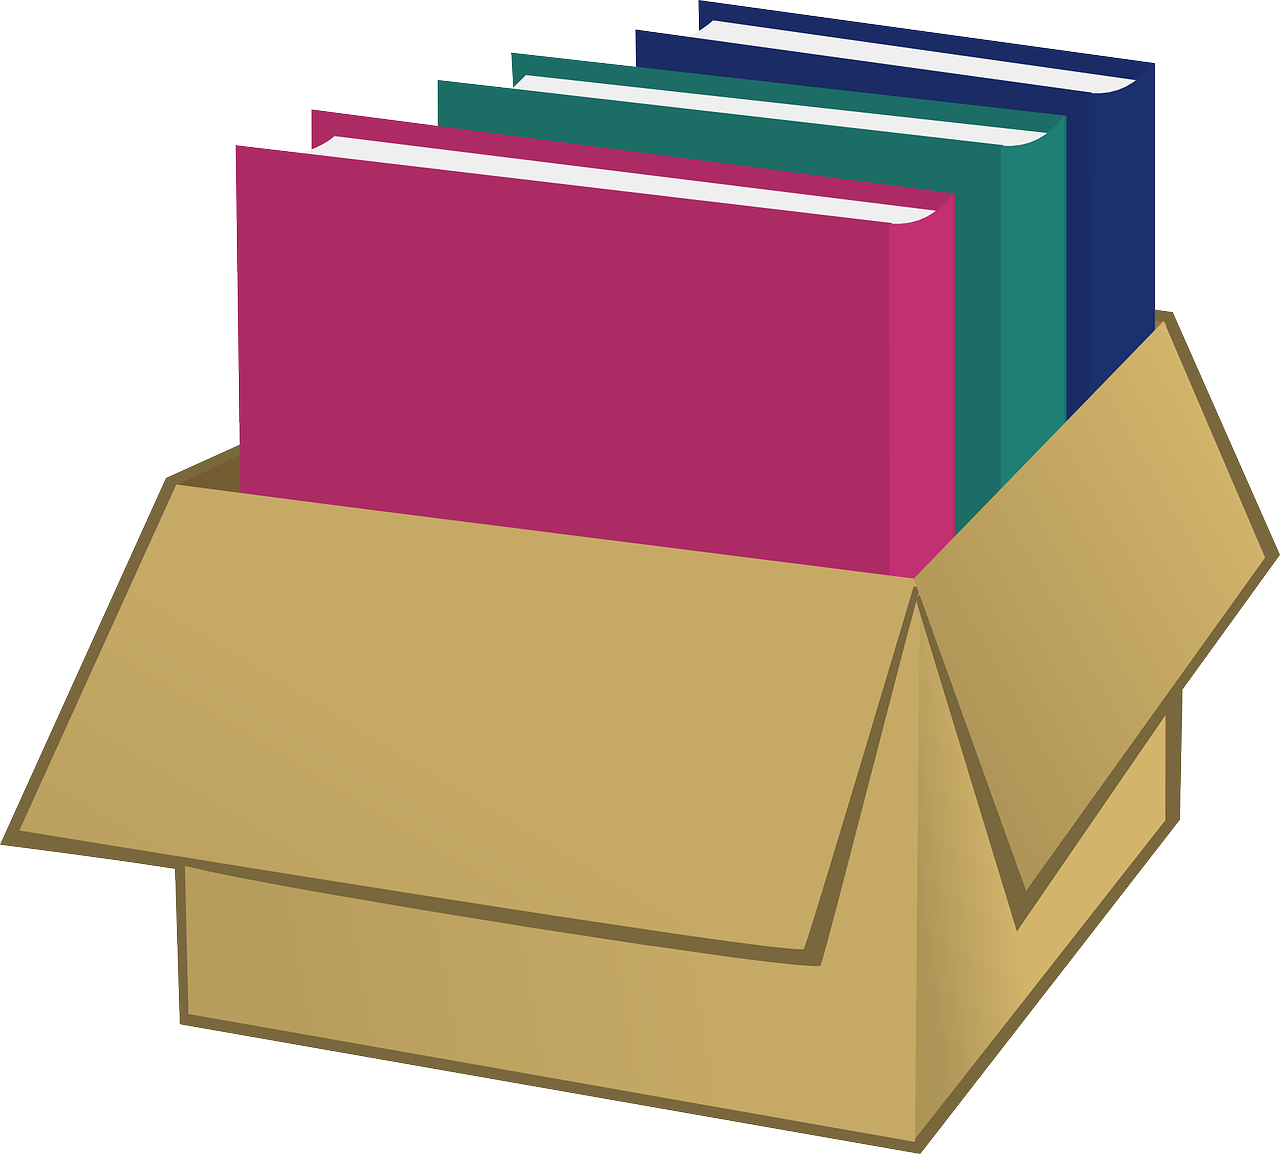 Box bookworks wooing buyers. Organized clipart shelving book